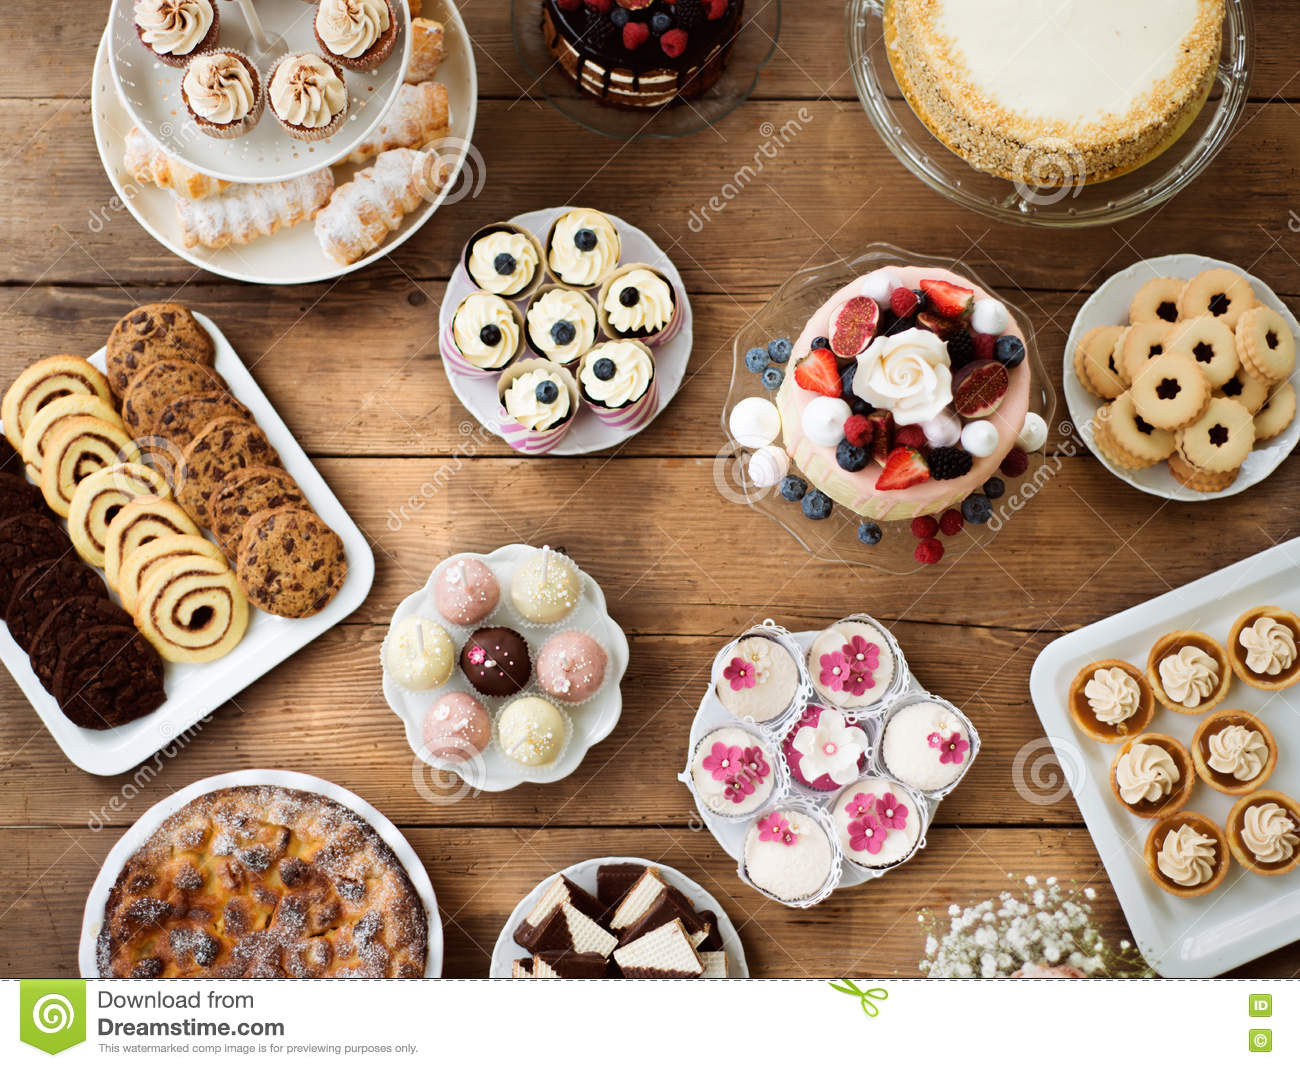 Cakes or pies 13